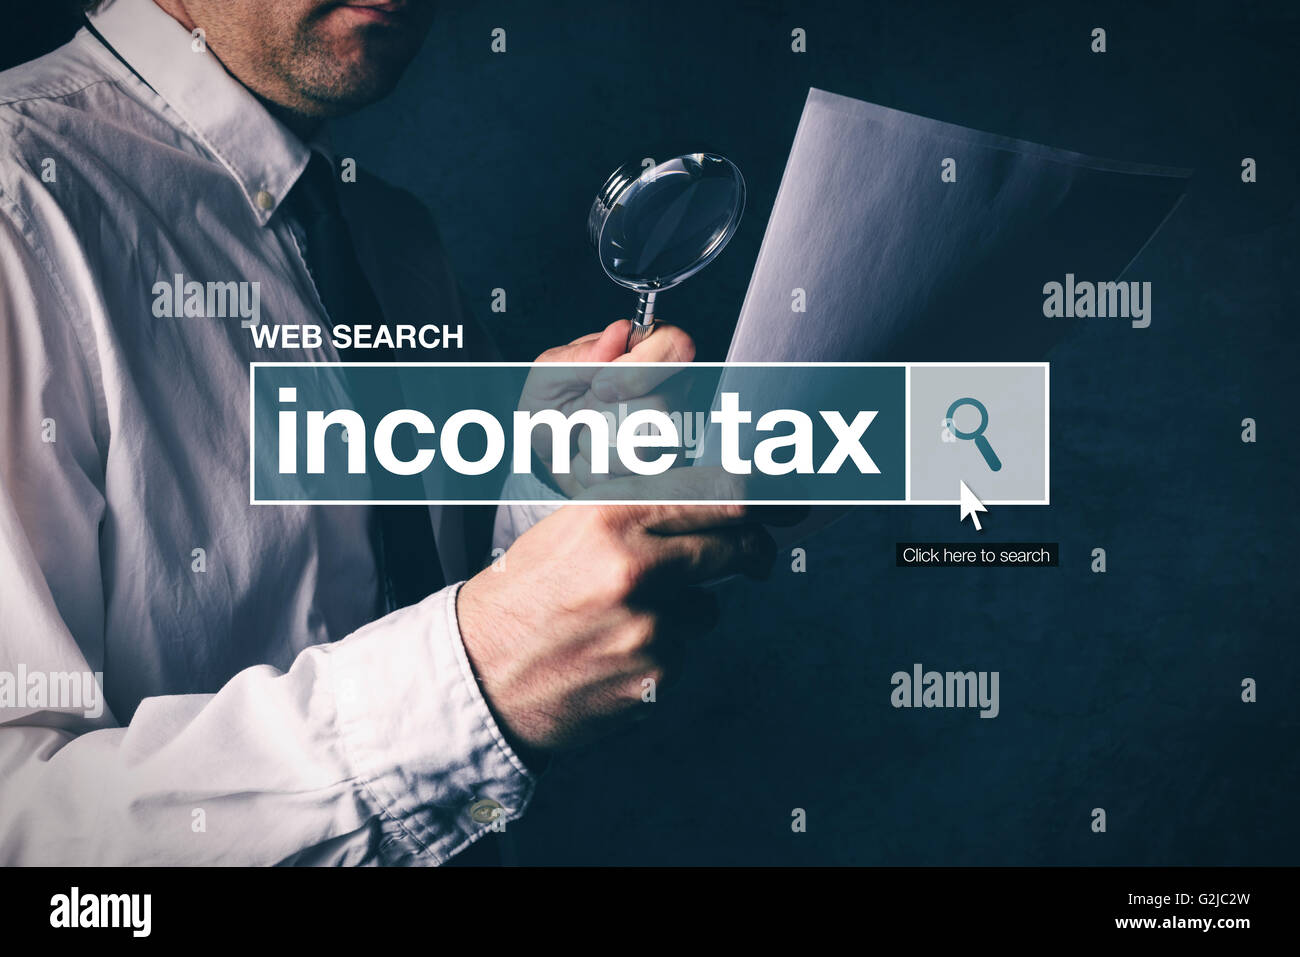 Web search bar glossary term - income tax definition in internet glossary. - Stock Image